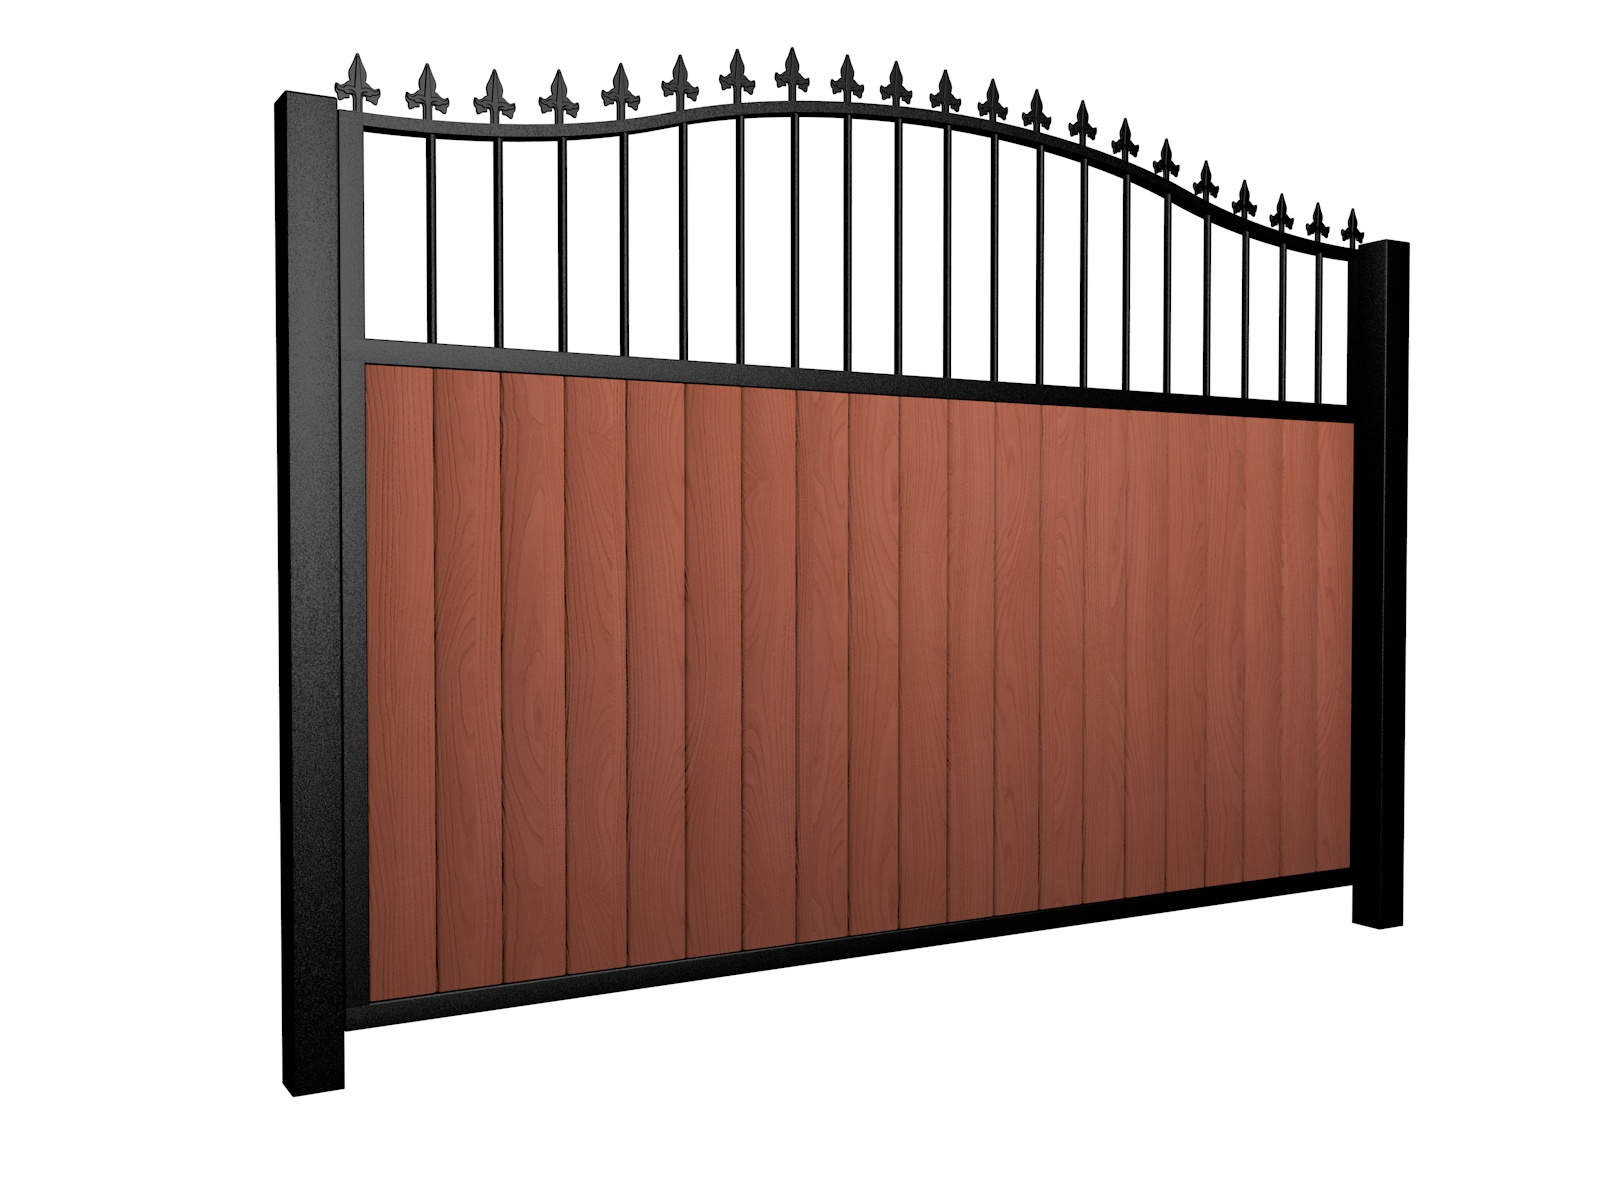 Sliding wood fill metal framed open bell top driveway gate with finials